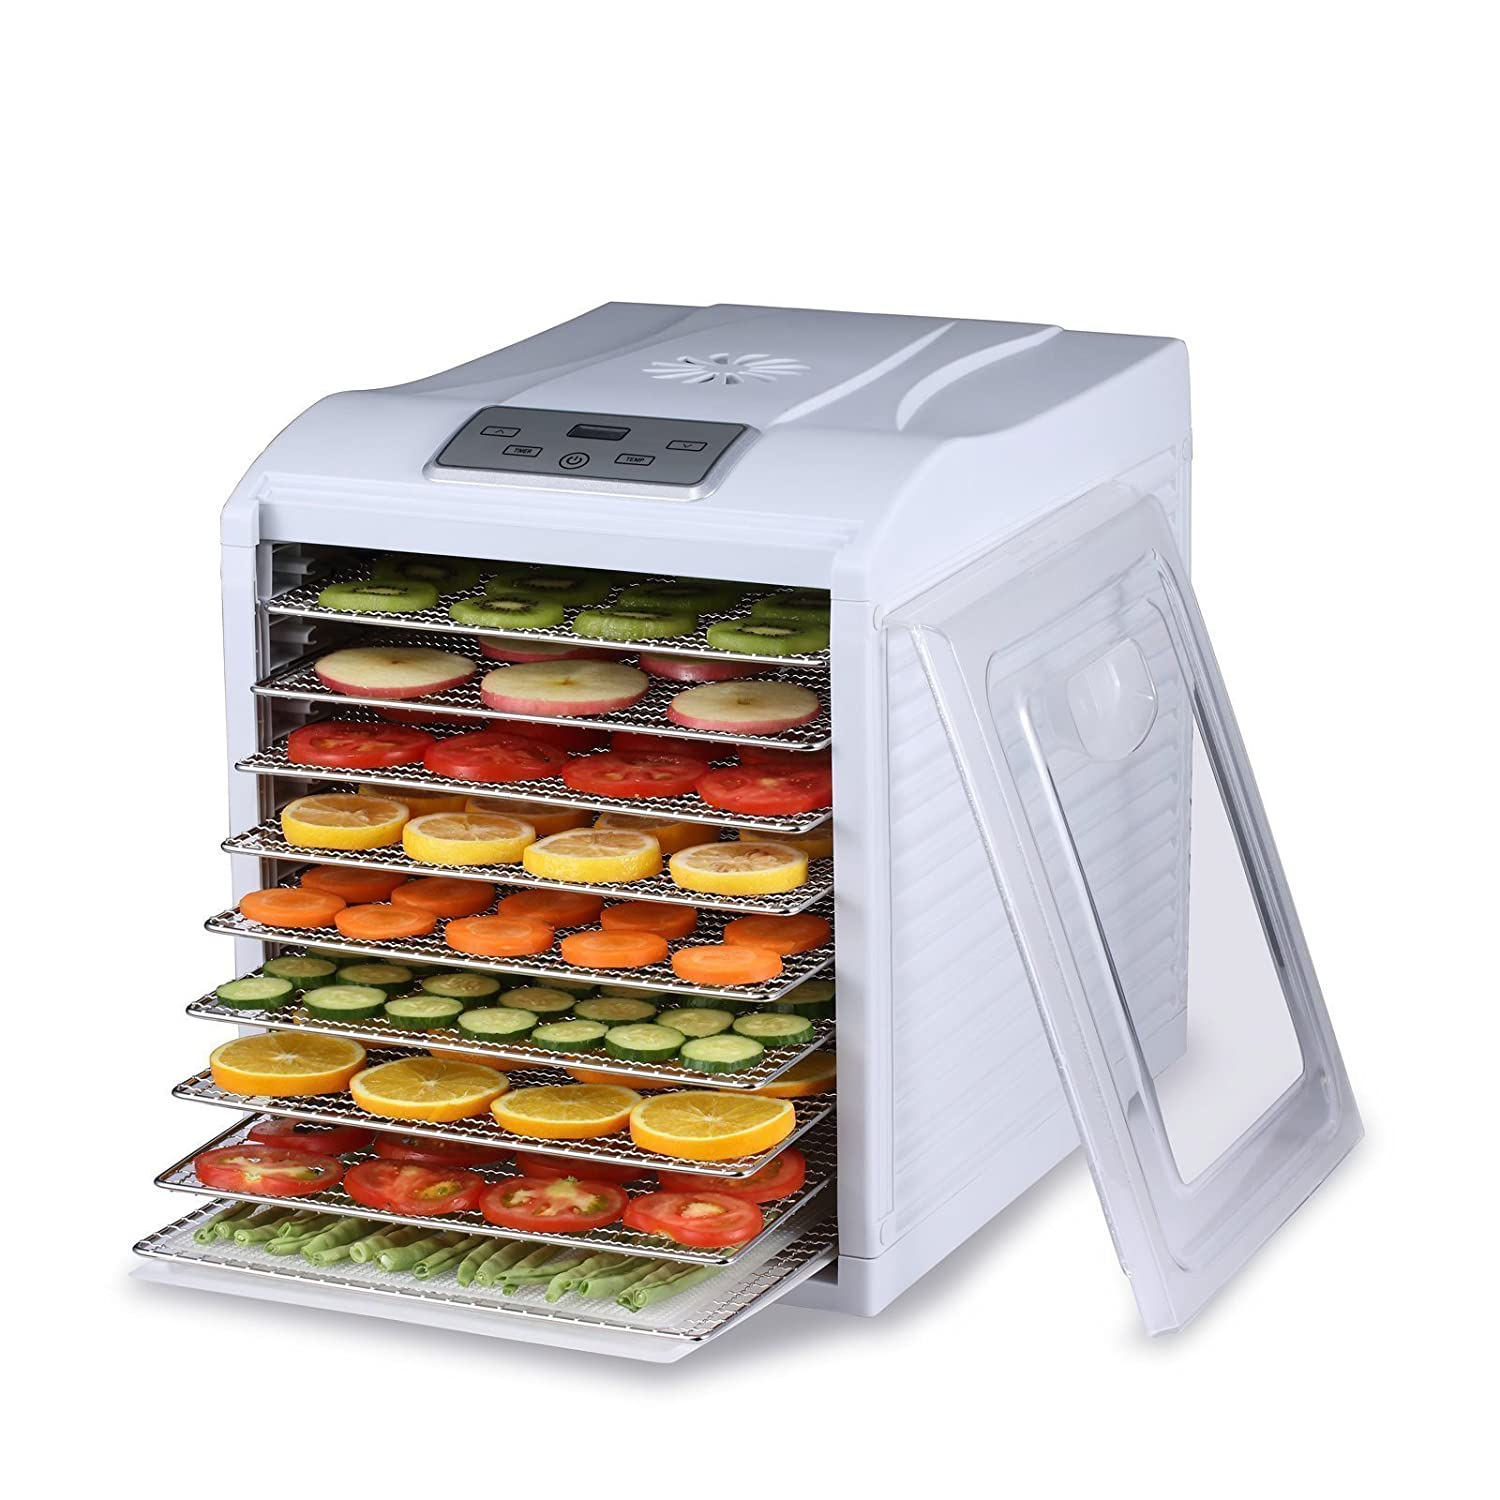 BioChef Arizona Sol 9 Tray Food Dehydrator with Digital Display, Stainless Steel Trays, 3 x Non Stick Tray, 3x Mesh Sheet & 1x Drip Tray (Black) Vitality 4 Life